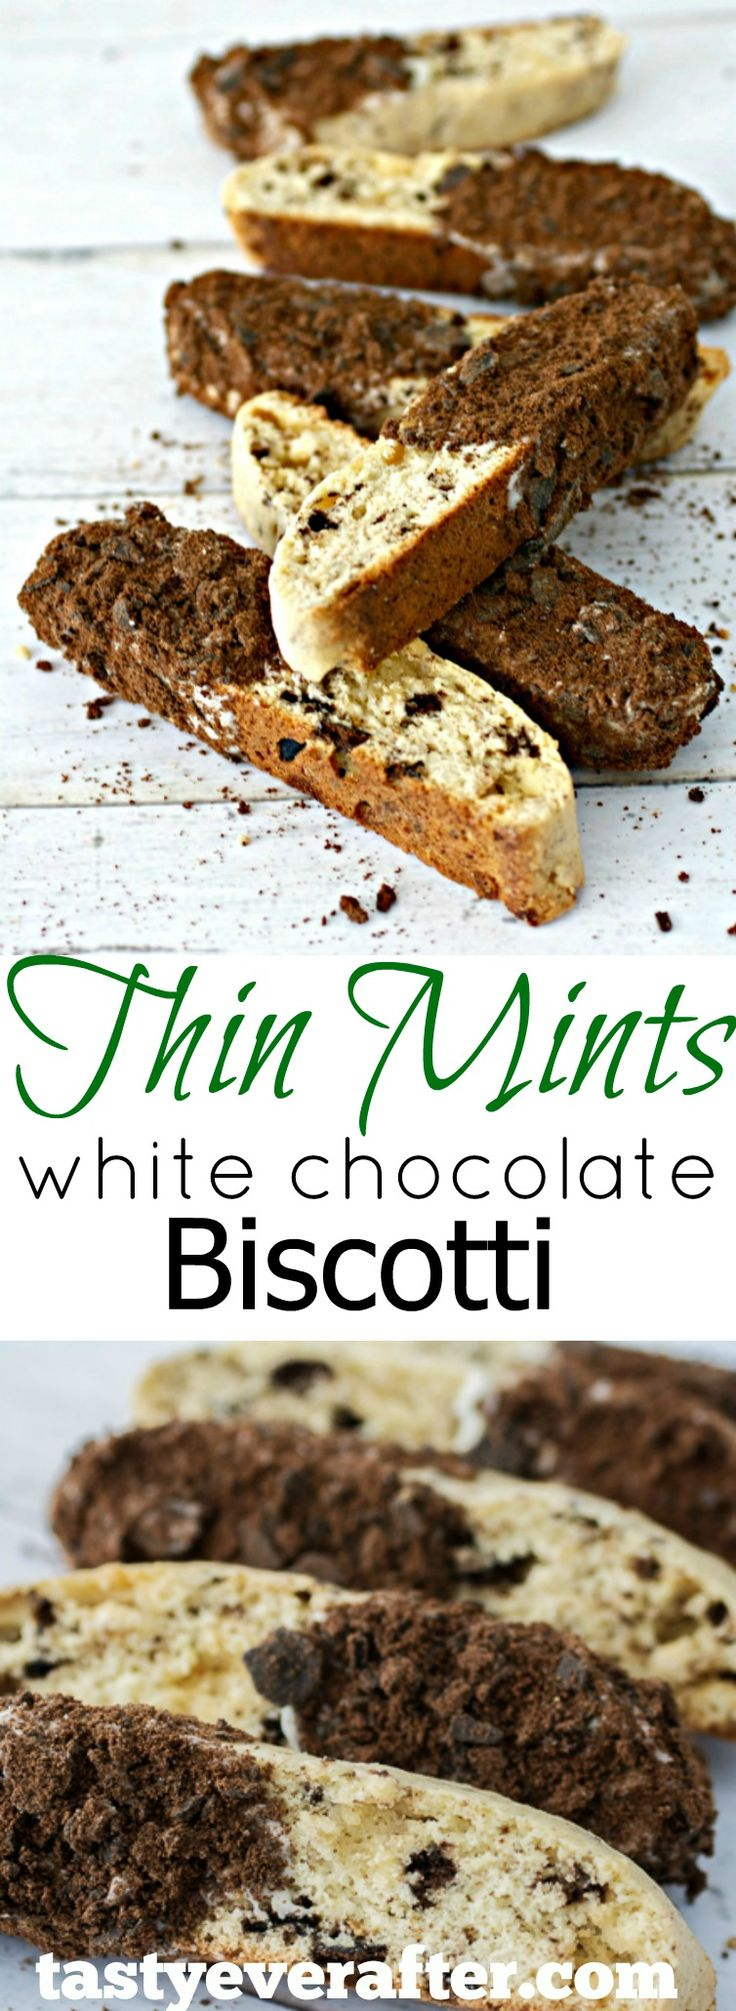 It's @gsusa cookie time!!  This Thin Mints White Chocolate Biscotti recipe is a classic, crunchy biscotti made with white chocolate chips and Girl Scouts Thin Mints cookies!